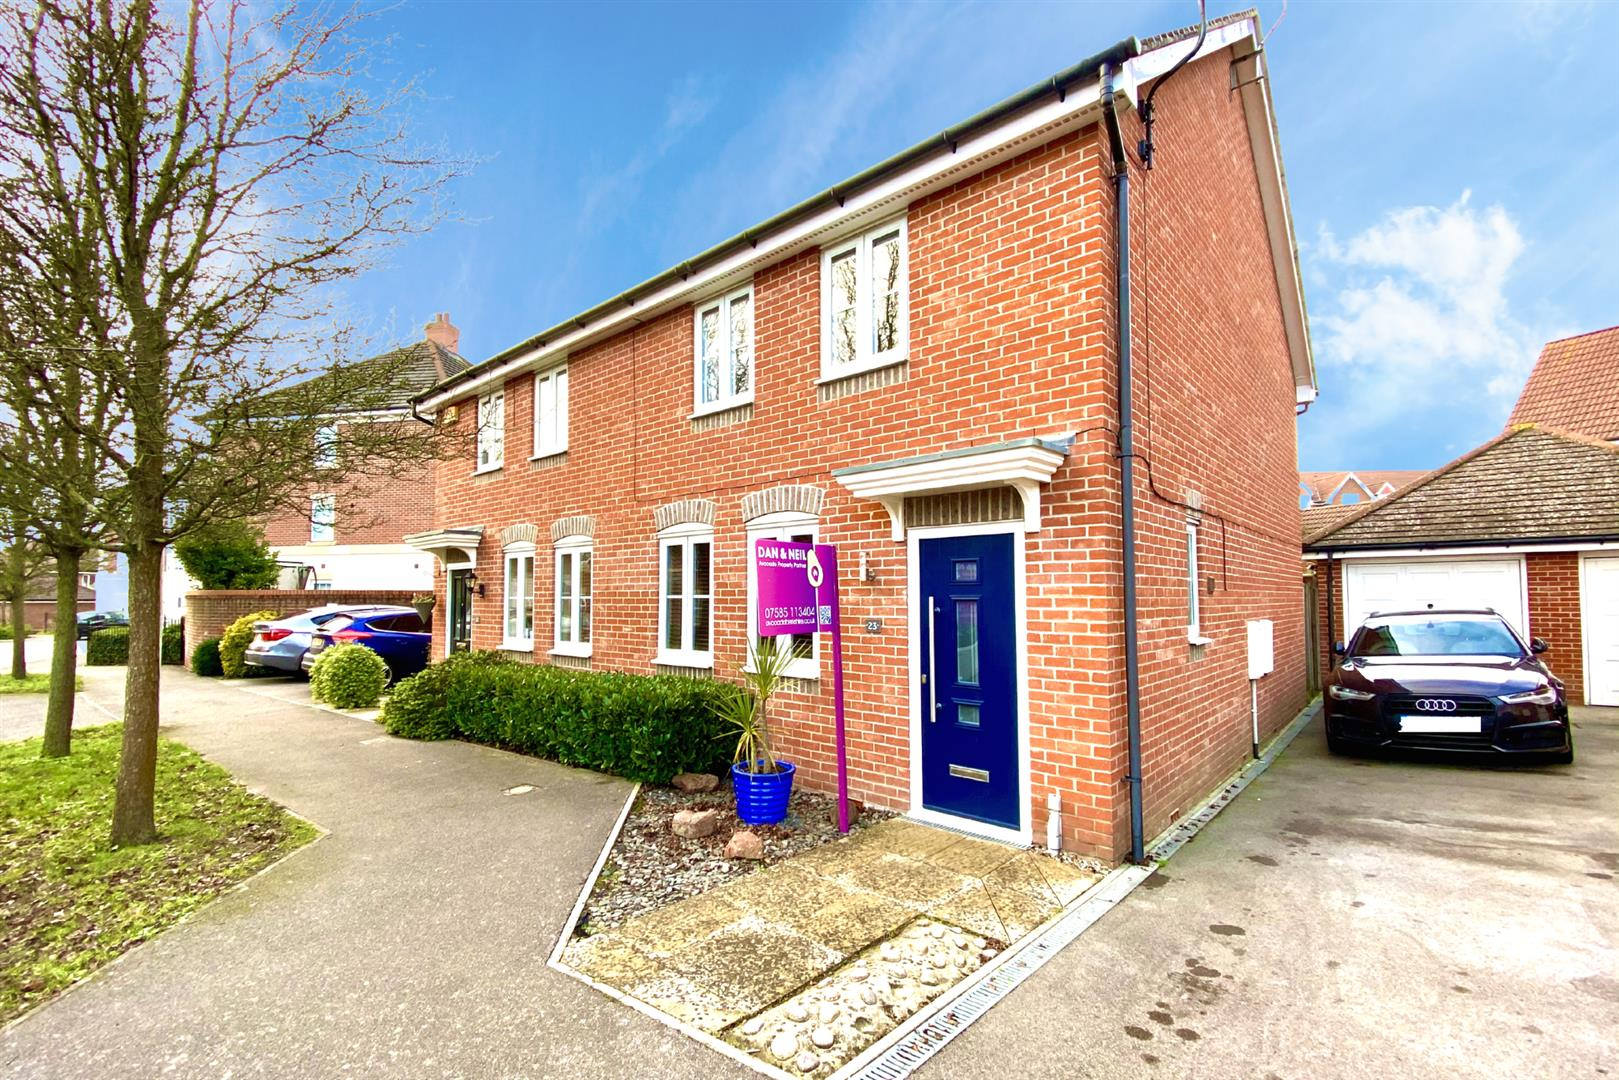 3 bed semi-detached for sale in Shinfield 1